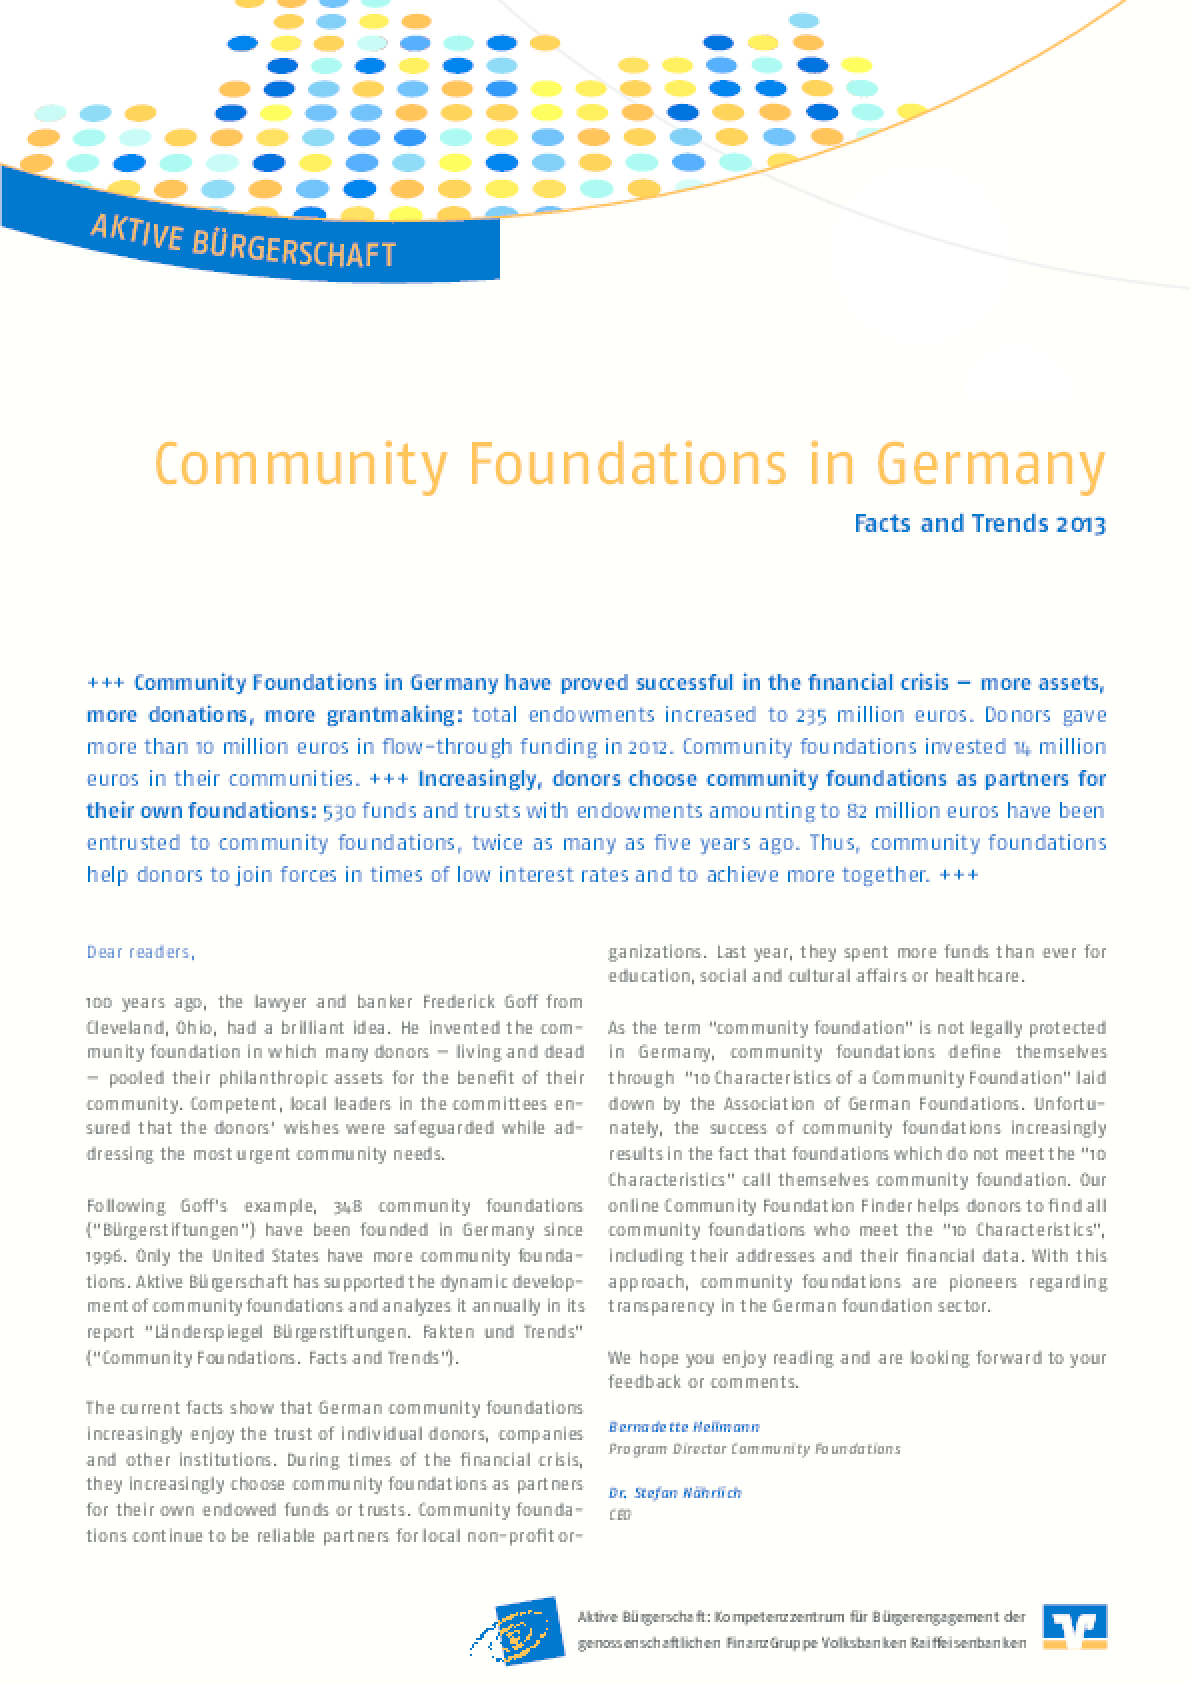 Community Foundations in Germany - Facts and Trends 2013